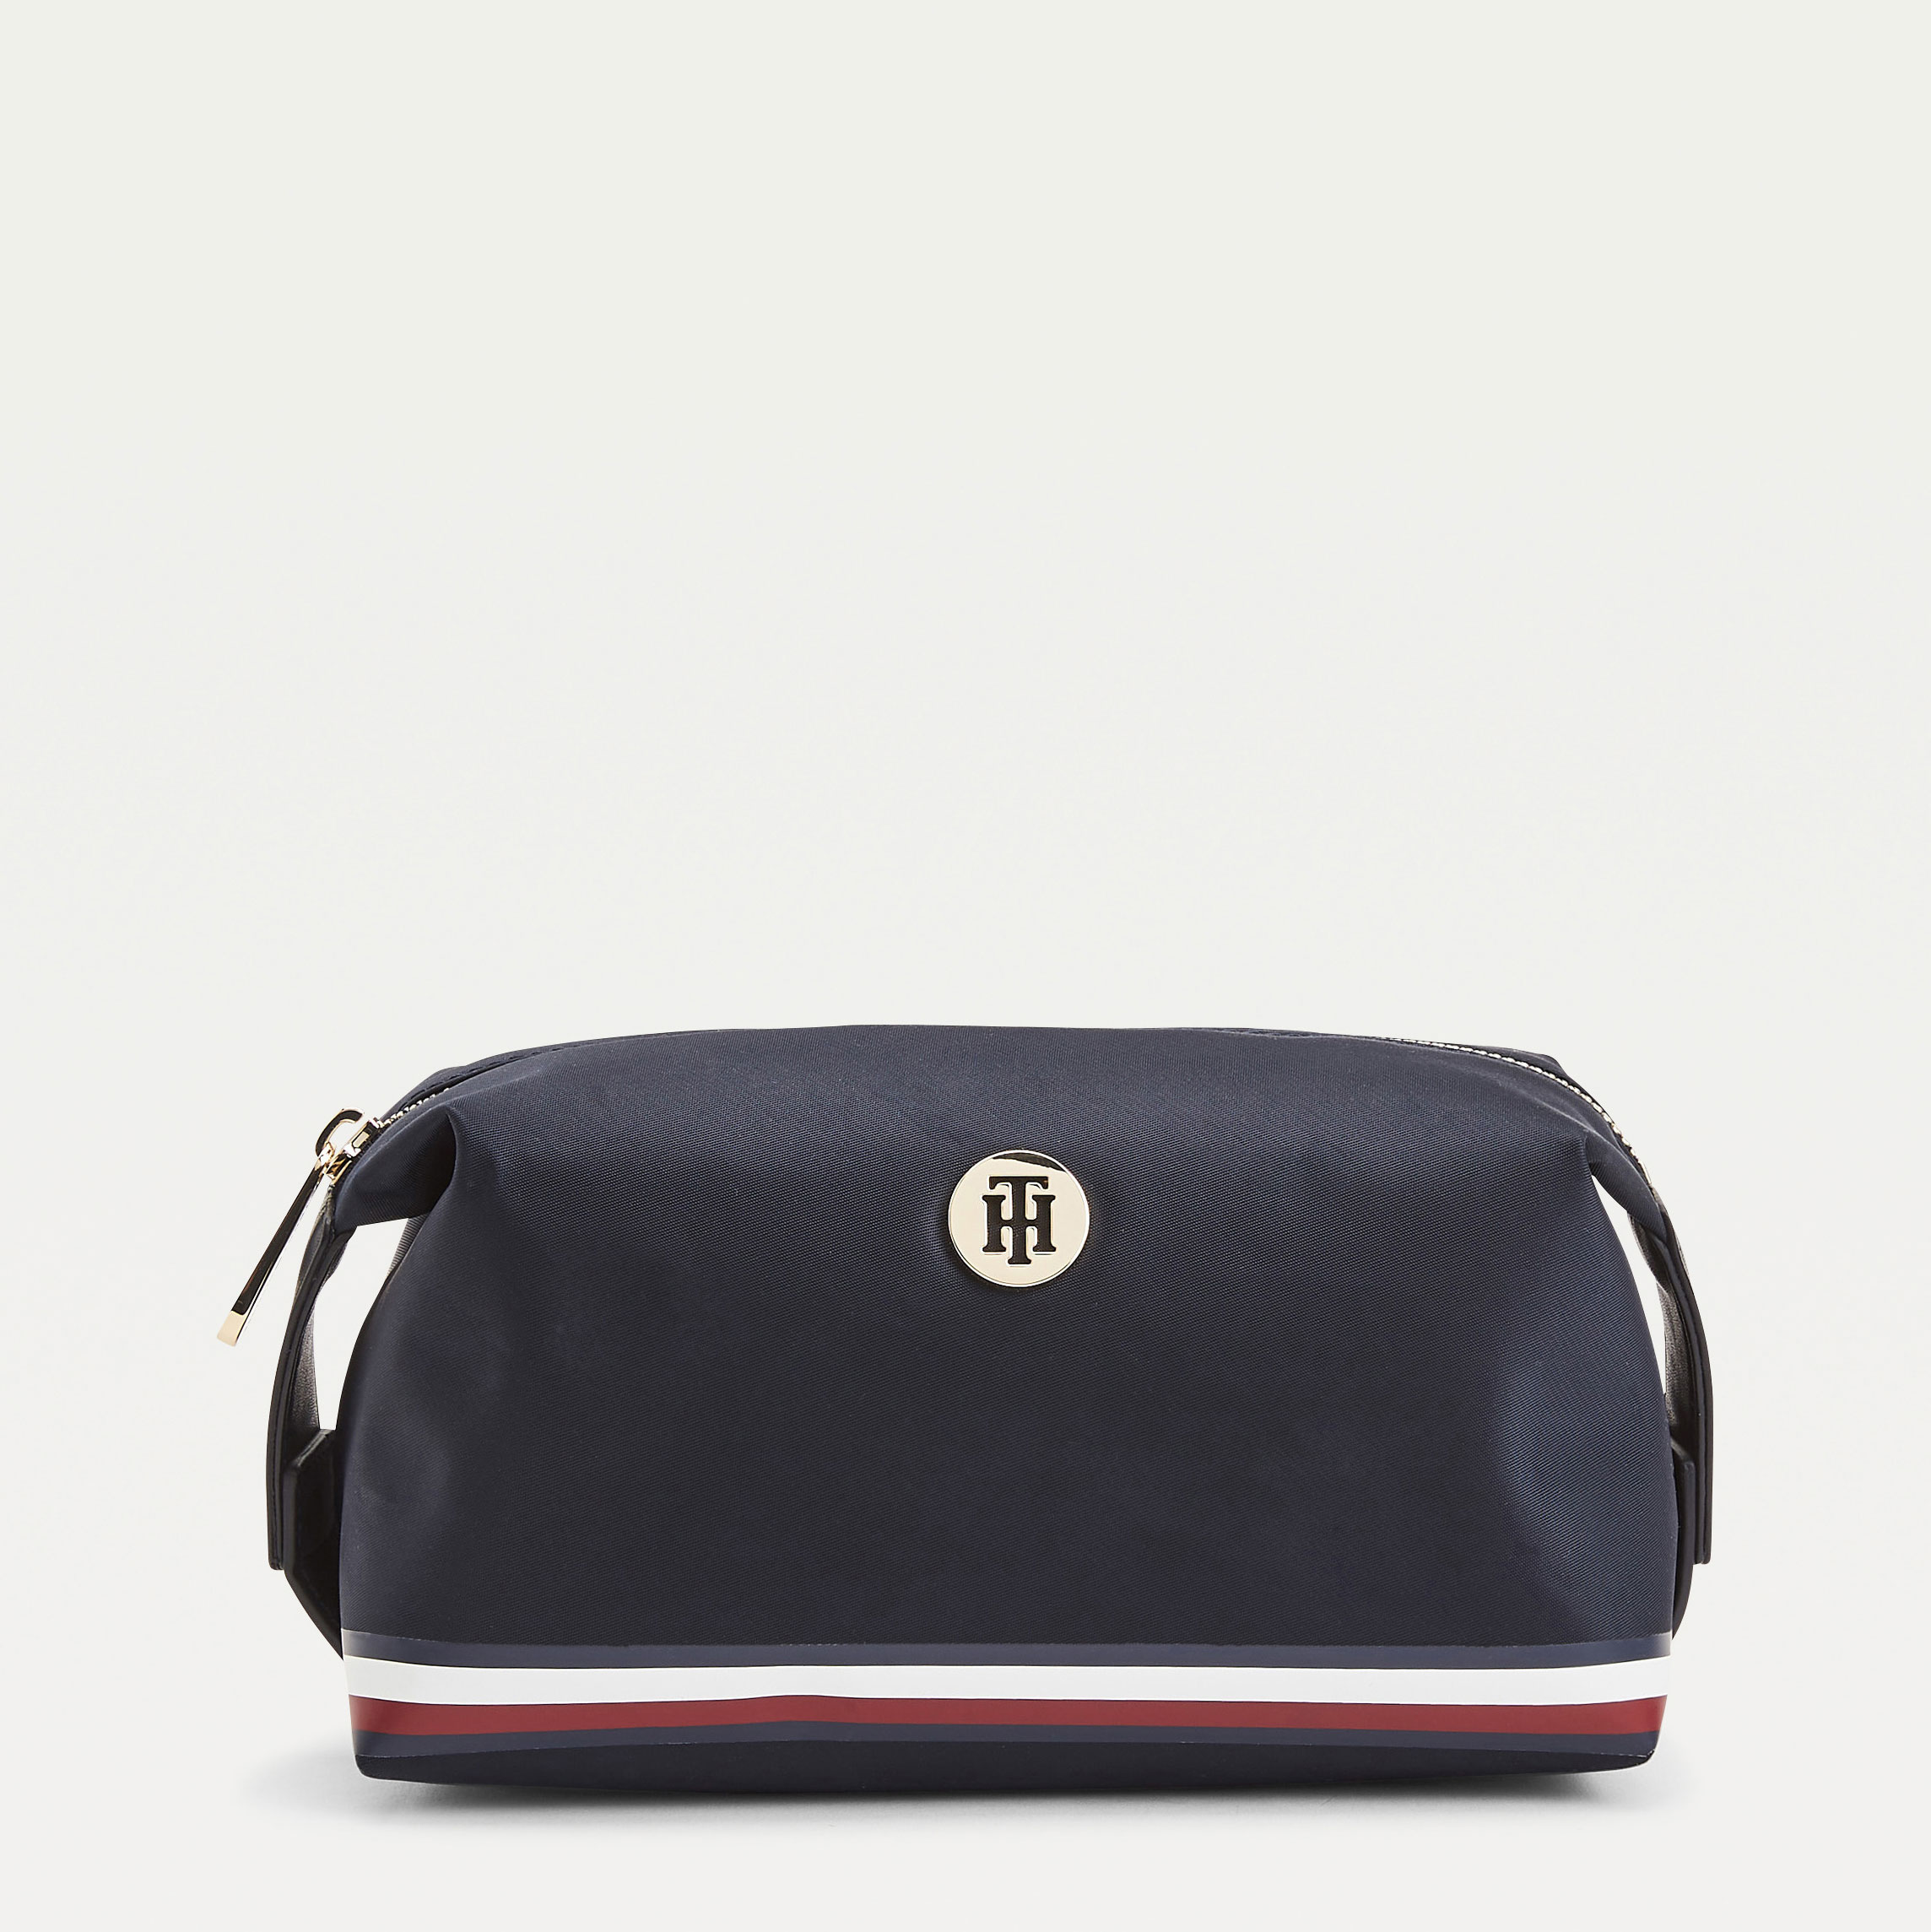 TOMMY HILFIGER Marroquinería Neceser Poppy Washbag Corp AW0AW10545-0GY